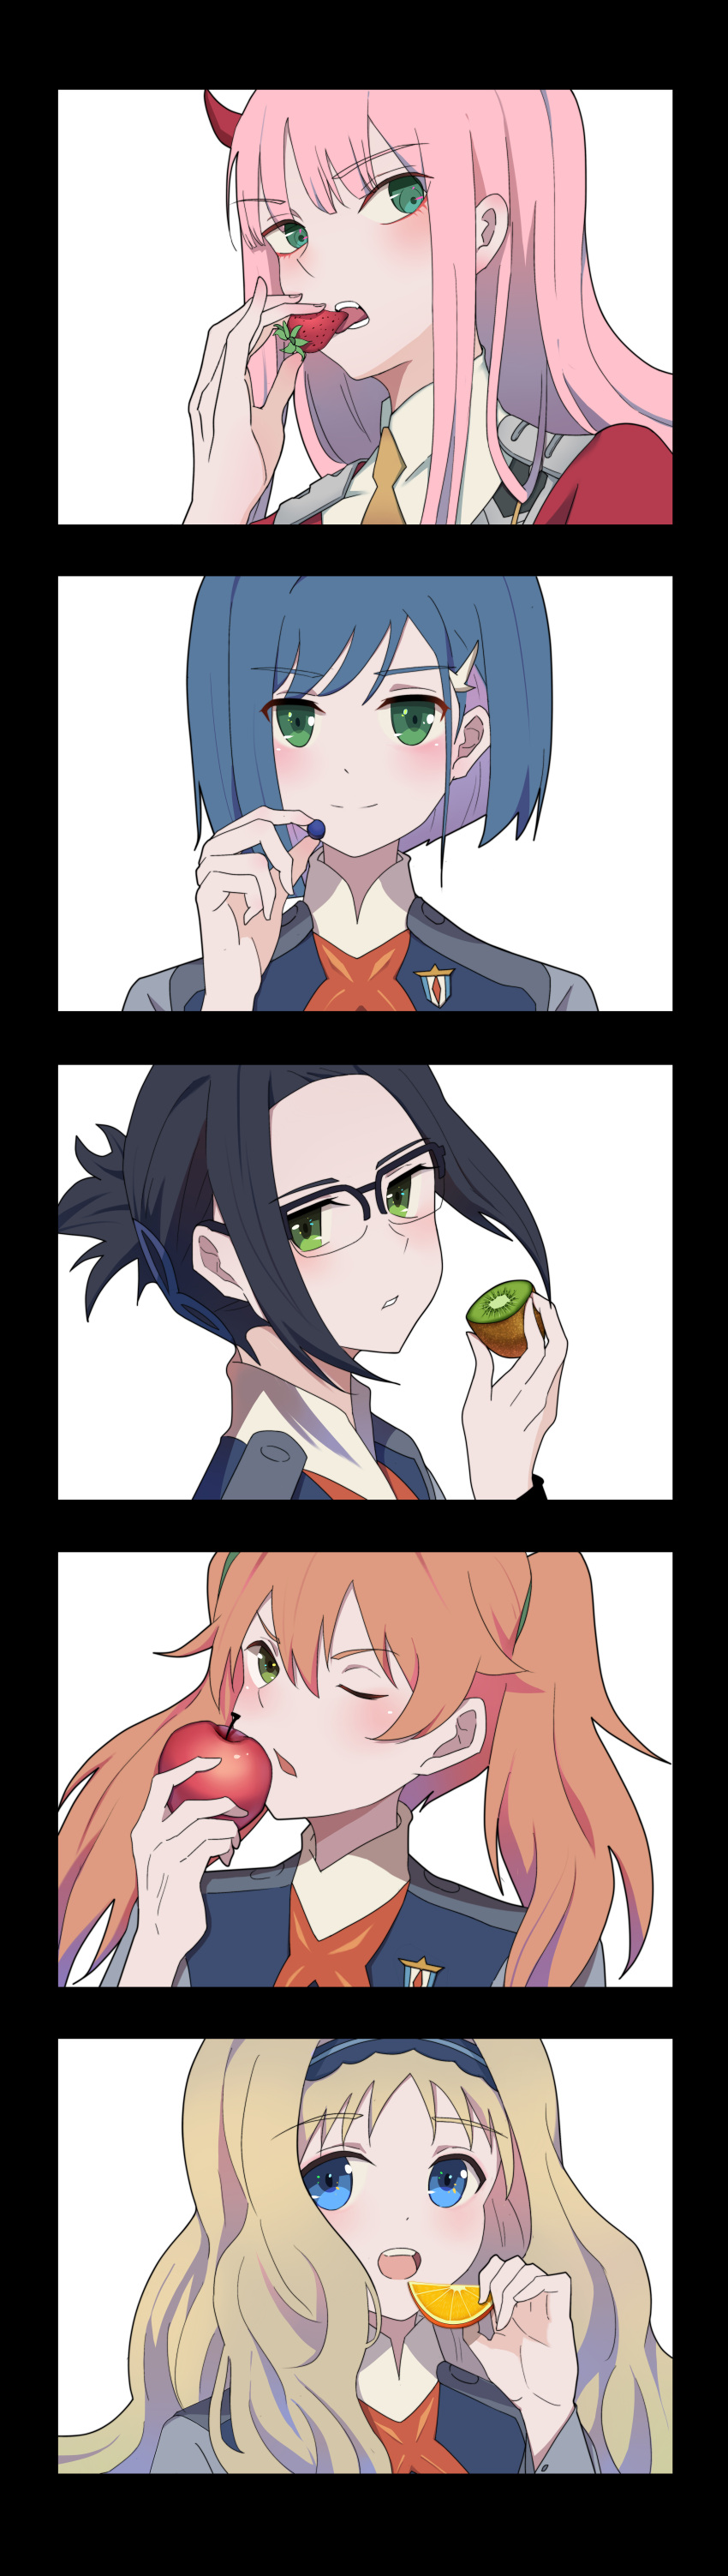 absurdres apple artist_request commentary_request darling_in_the_franxx eating food fruit glasses grapes highres ichigo_(darling_in_the_franxx) ikuno_(darling_in_the_franxx) incredibly_absurdres kiwi_slice kokoro_(darling_in_the_franxx) miku_(darling_in_the_franxx) military military_uniform orange orange_slice strawberry uniform zero_two_(darling_in_the_franxx)